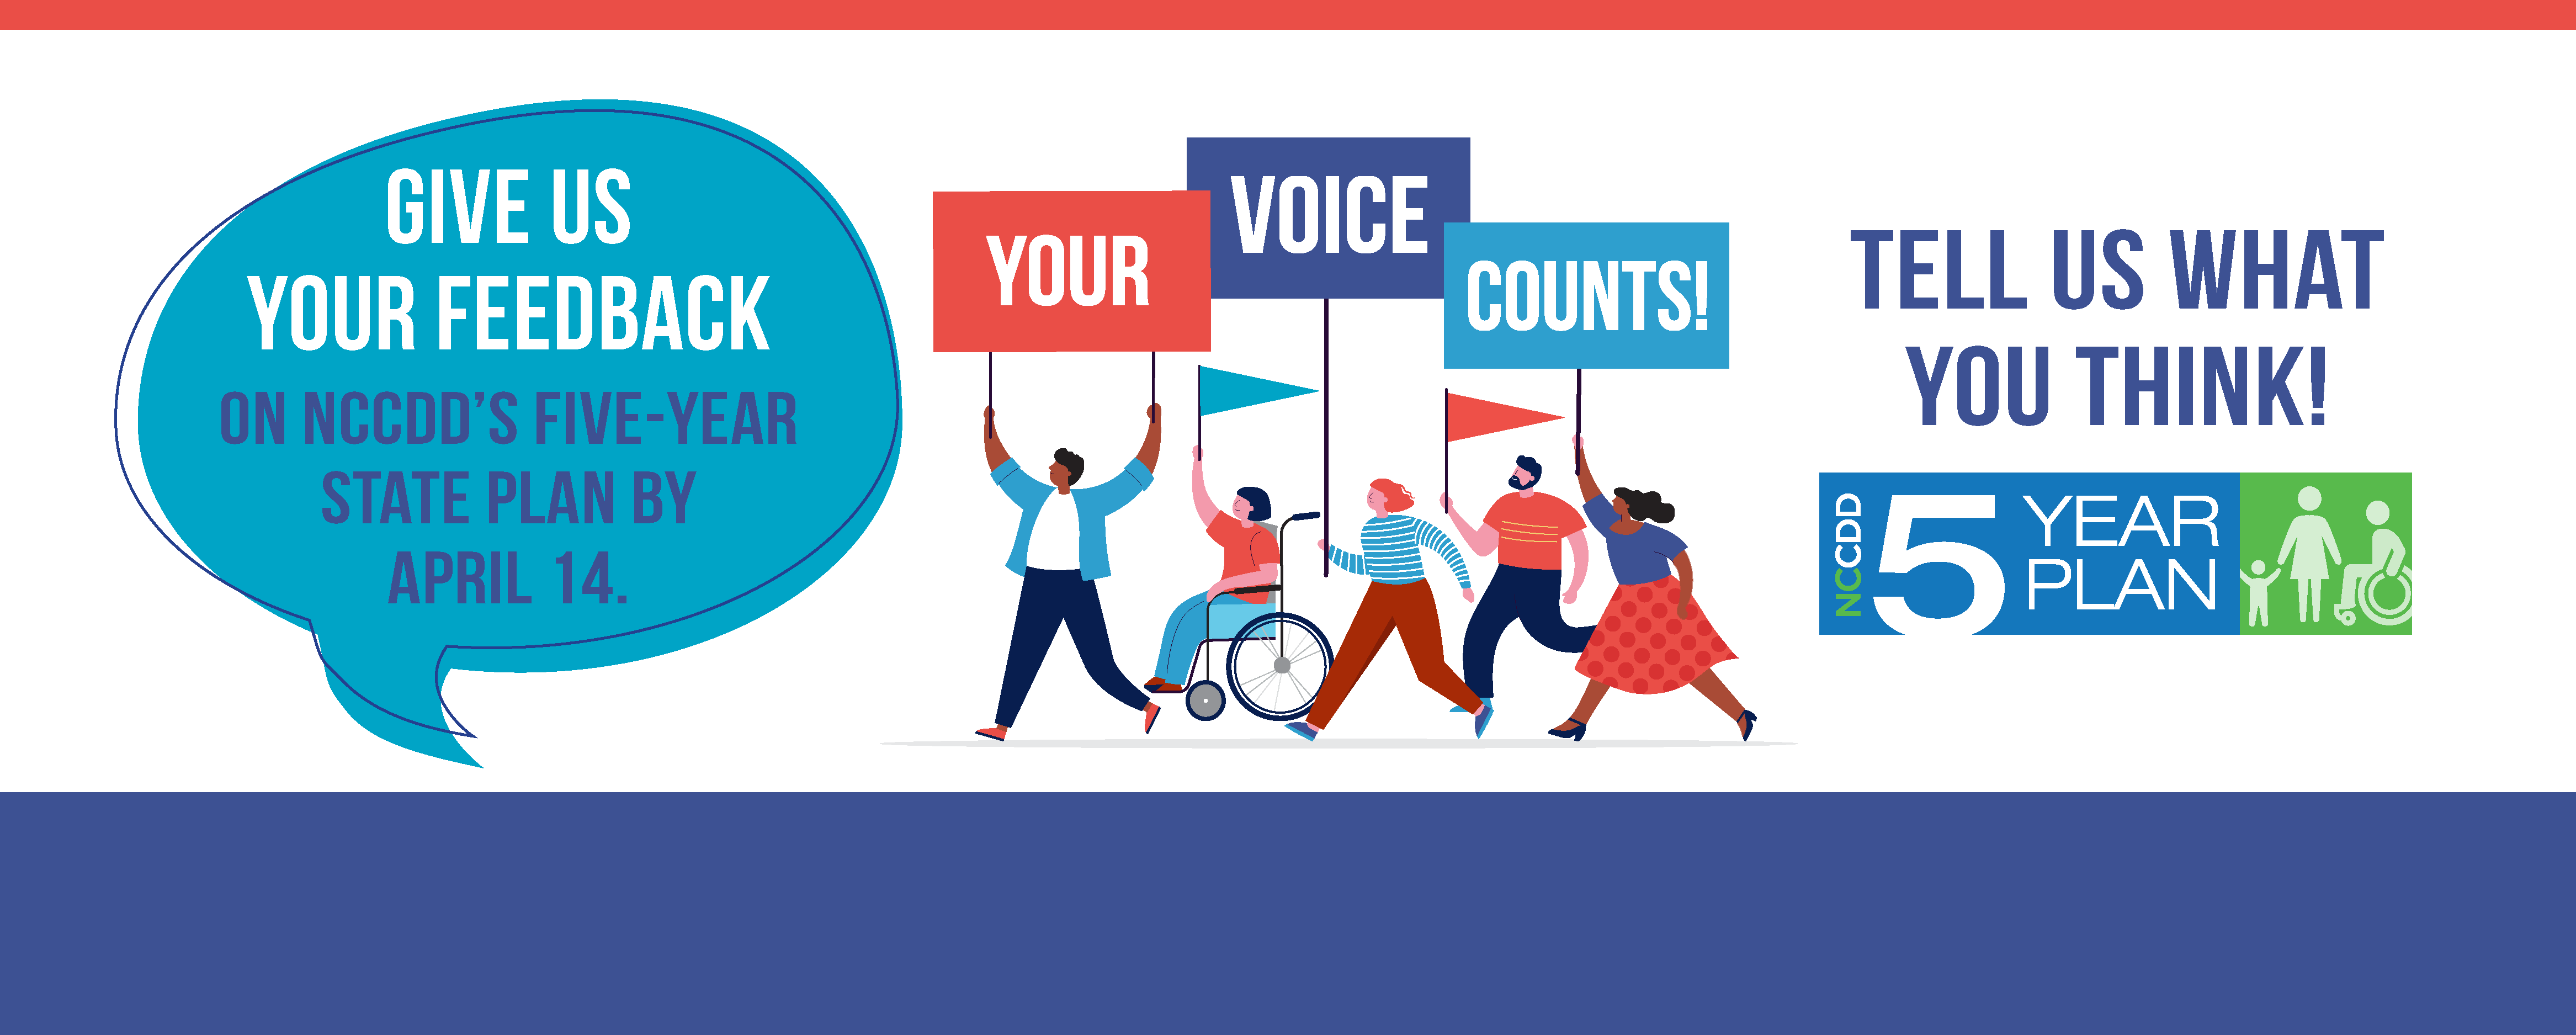 Give us your feedback on NCCDD's Five-Year State Plan by April 14. Your Voice Counts!